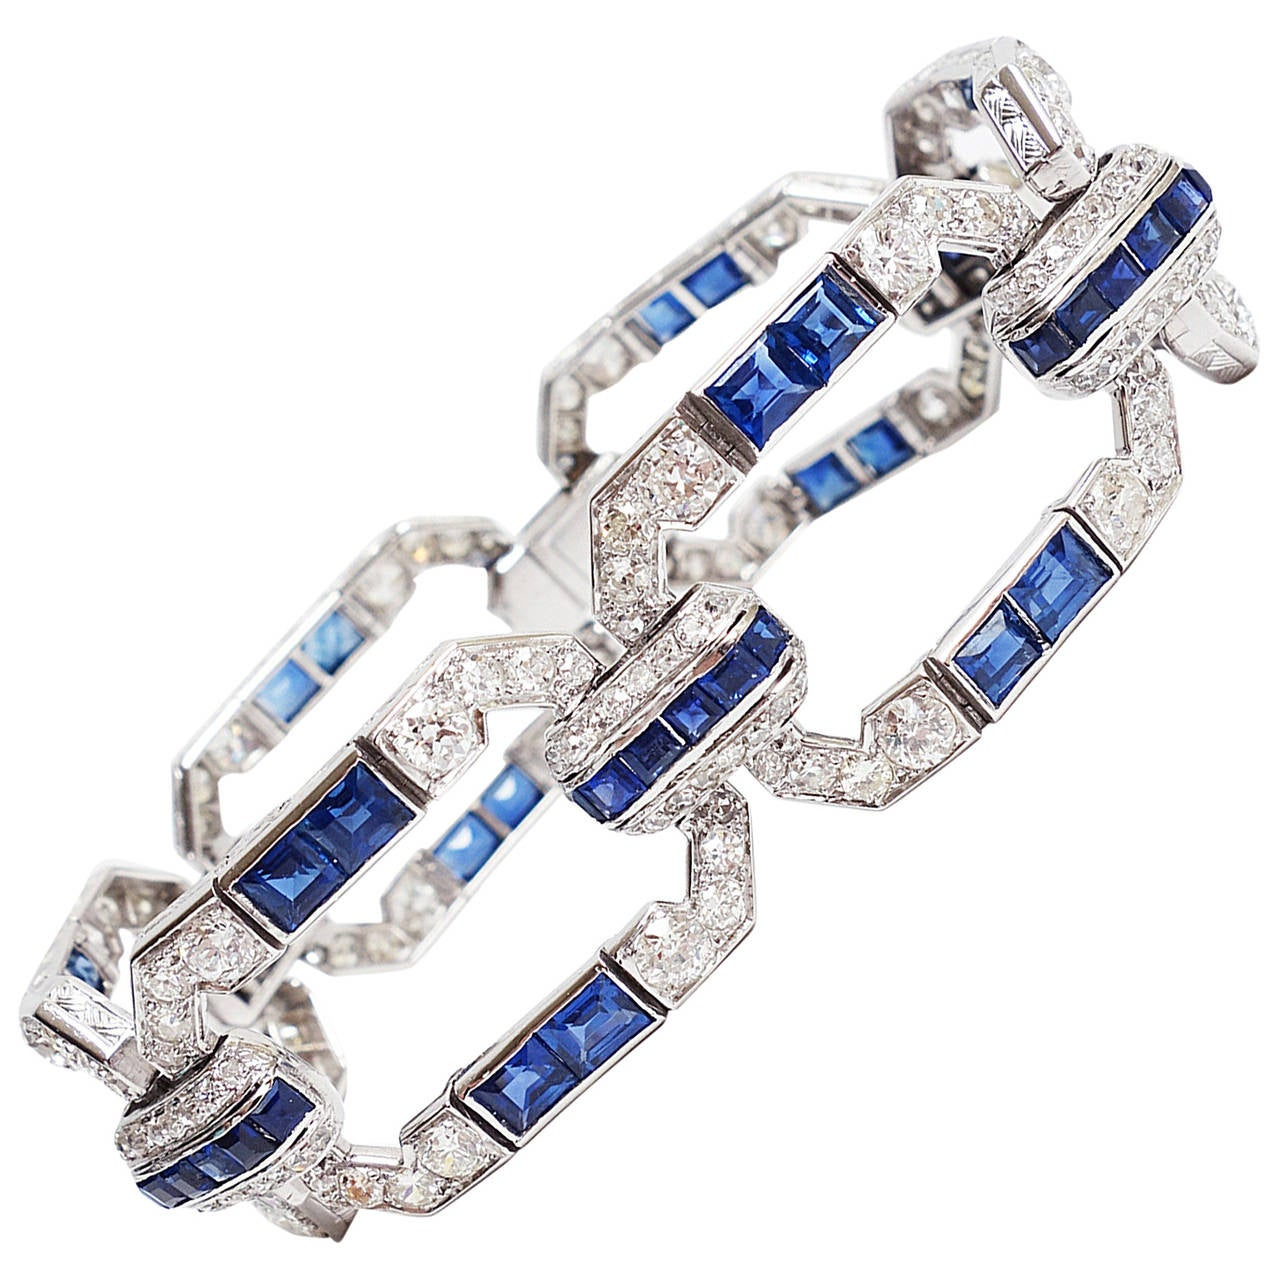 Magnificent Art Deco  Sapphire Diamond Platinum Bracelet